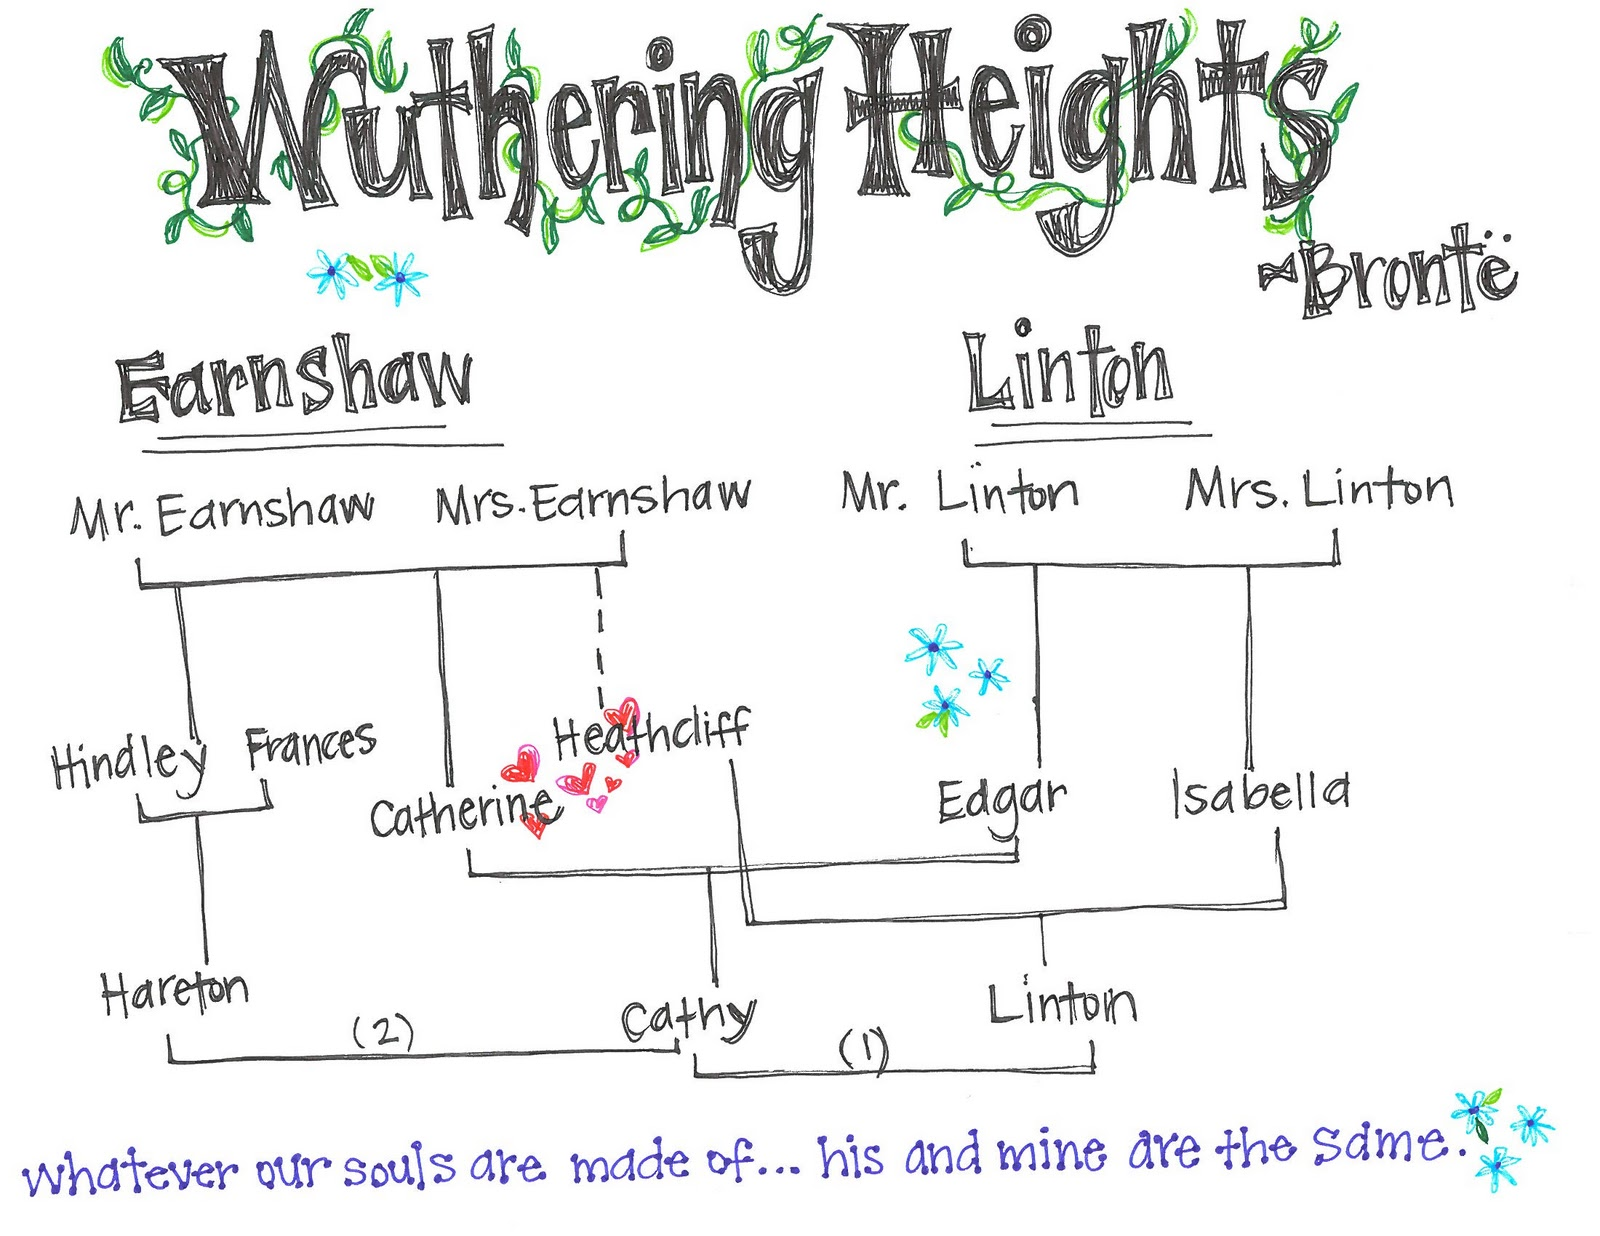 Plot Diagram Of Pride And Prejudice Brain Spinal Cord Labeled Wuthering Heights House Quotes Quotesgram